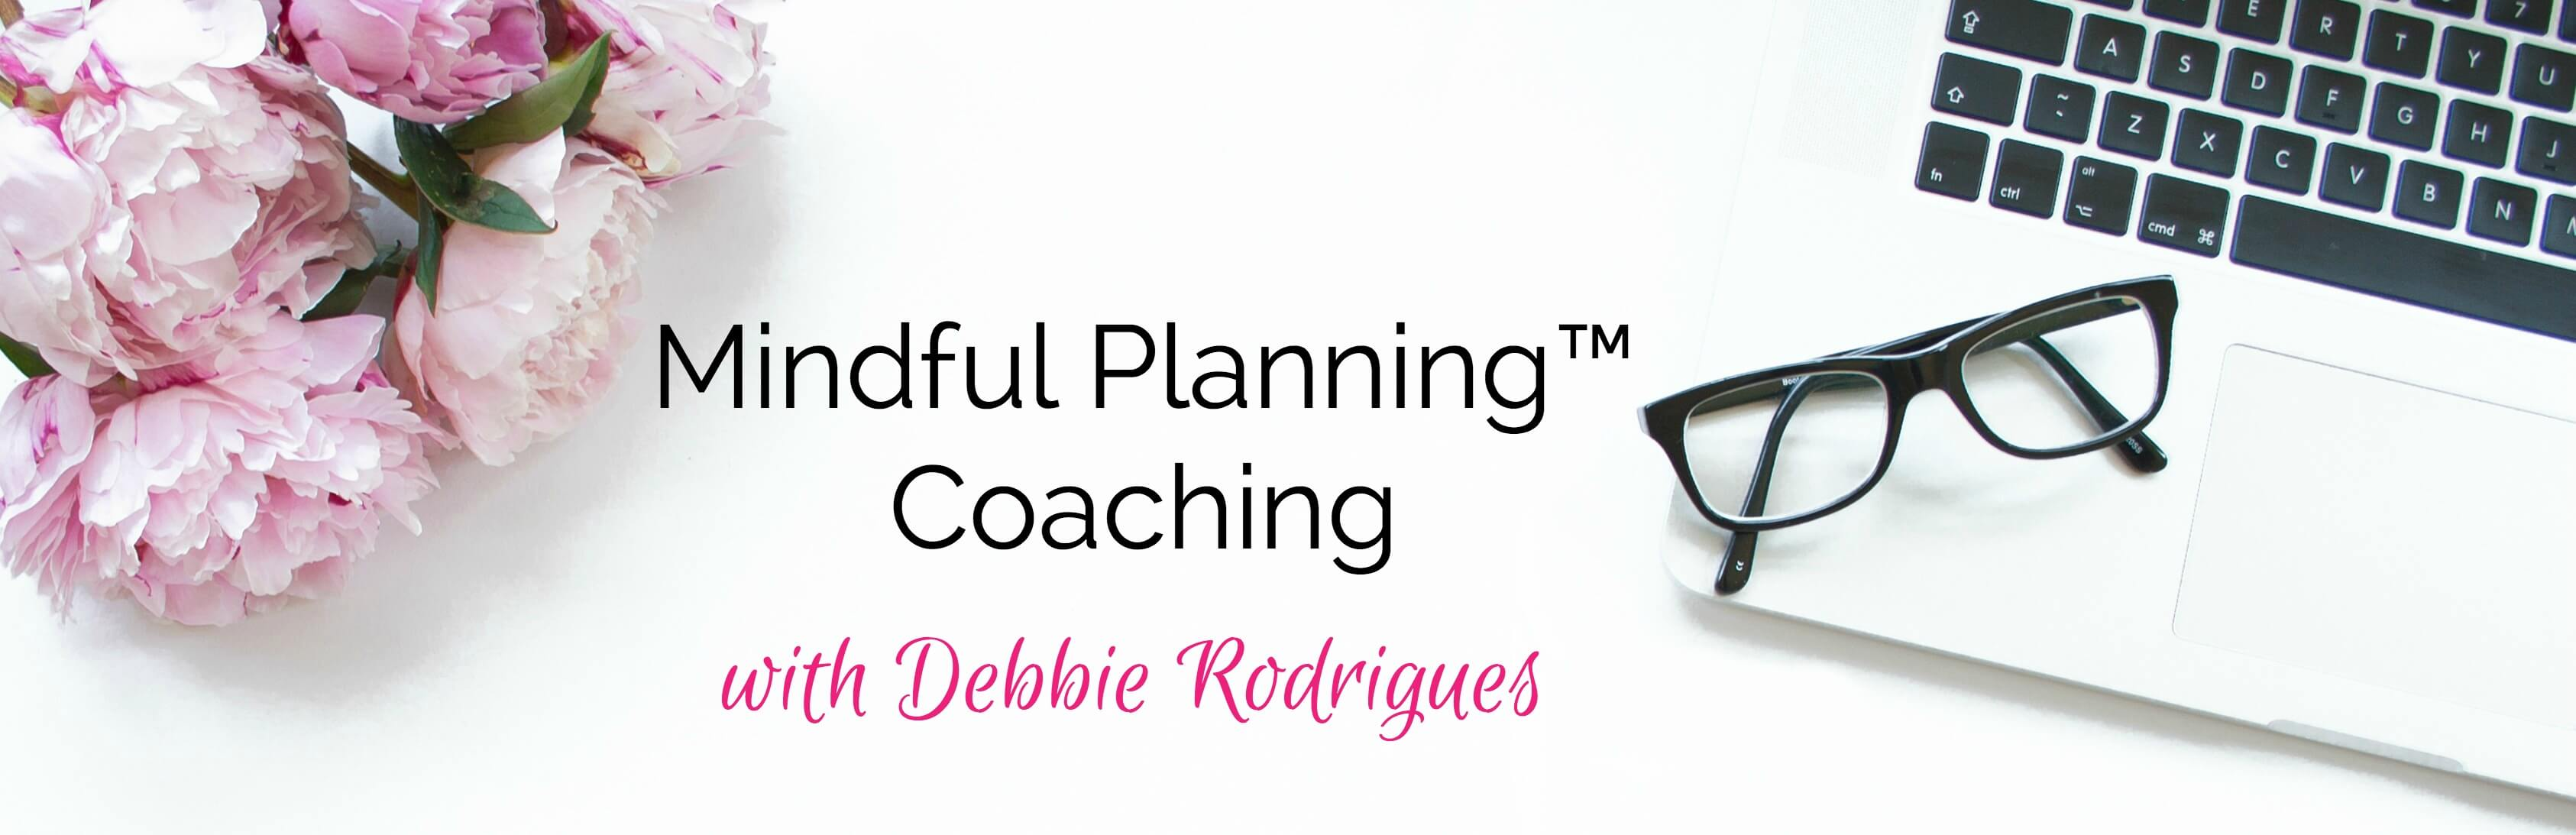 Get clarity about your goals, solve your efficiency struggles, and become more productive with Mindful Planning™.